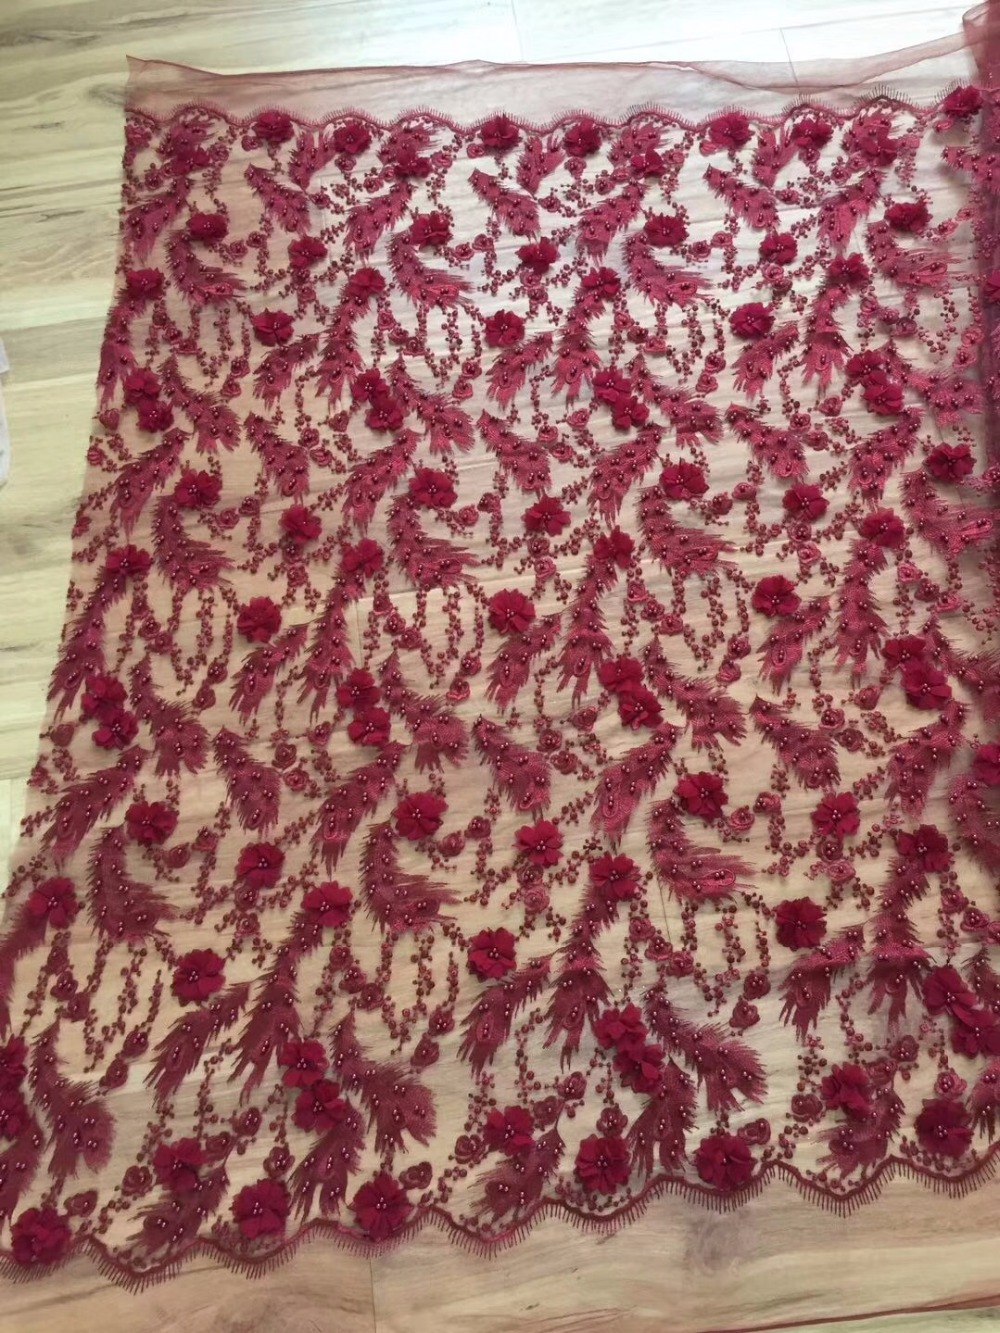 2018-Latest-African-Lace-Fabric-Nigerian-Lace-Fabric-High-Quality-French-Tulle-Lace-Fabric-Luxury-Design